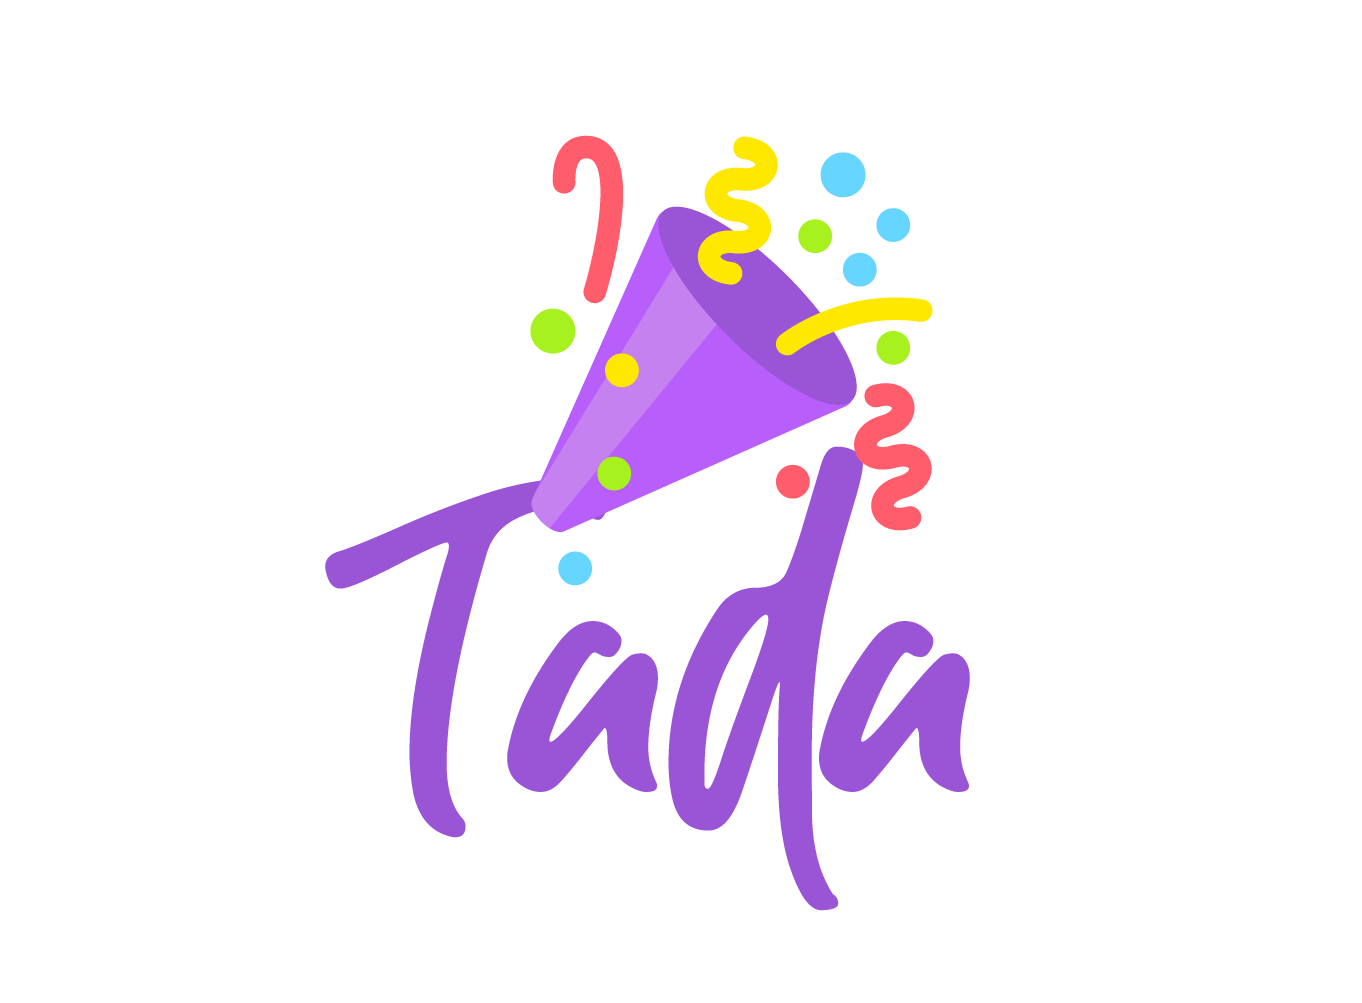 Tada - A new sales booster with gamified pop-ups